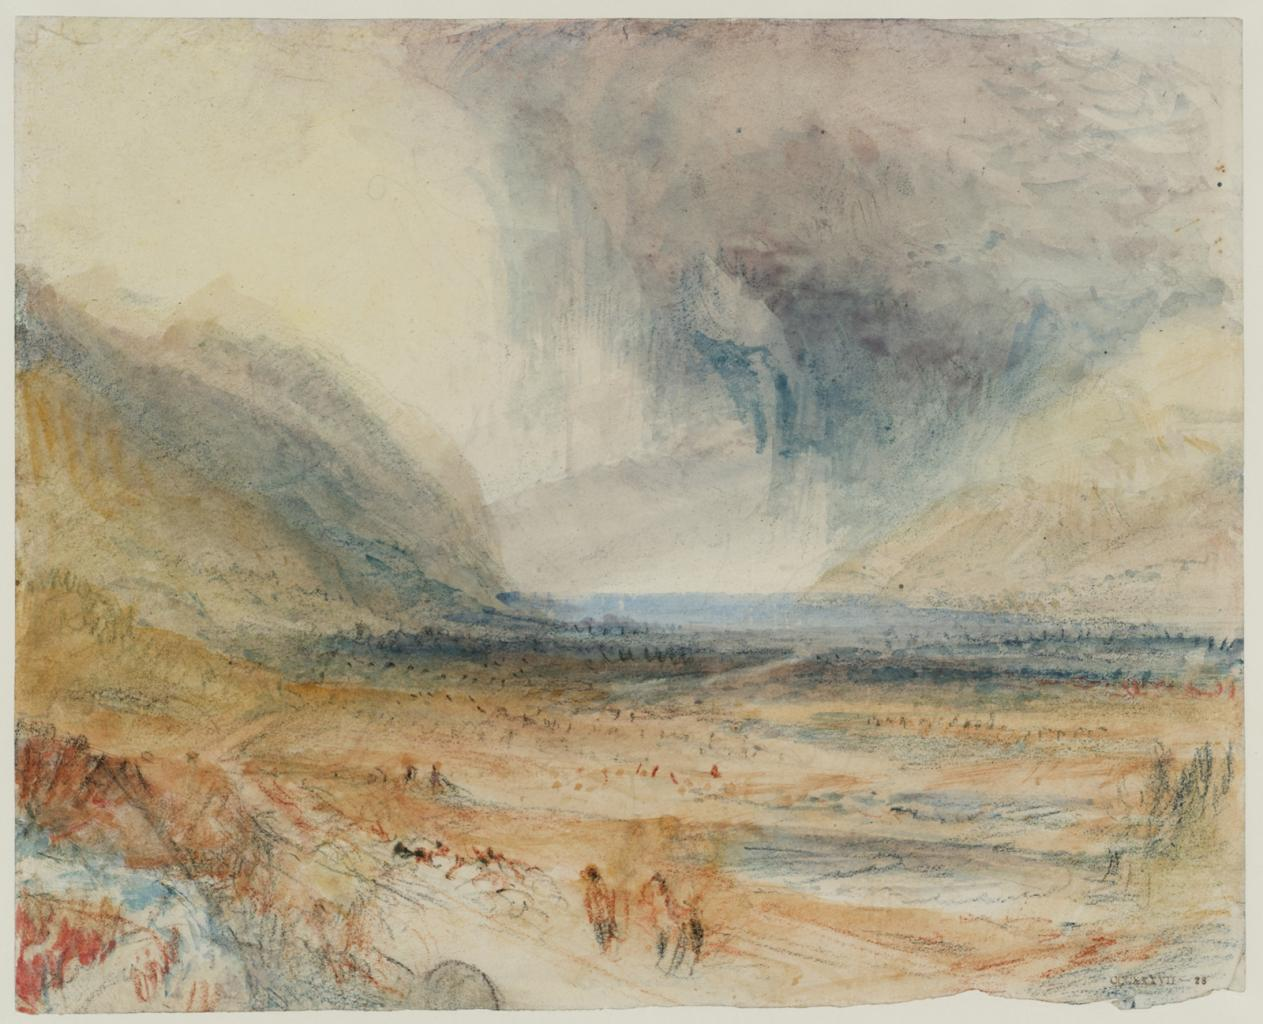 Joseph Mallord William Turner,A Storm over Lago Maggiore, from near Magadino image